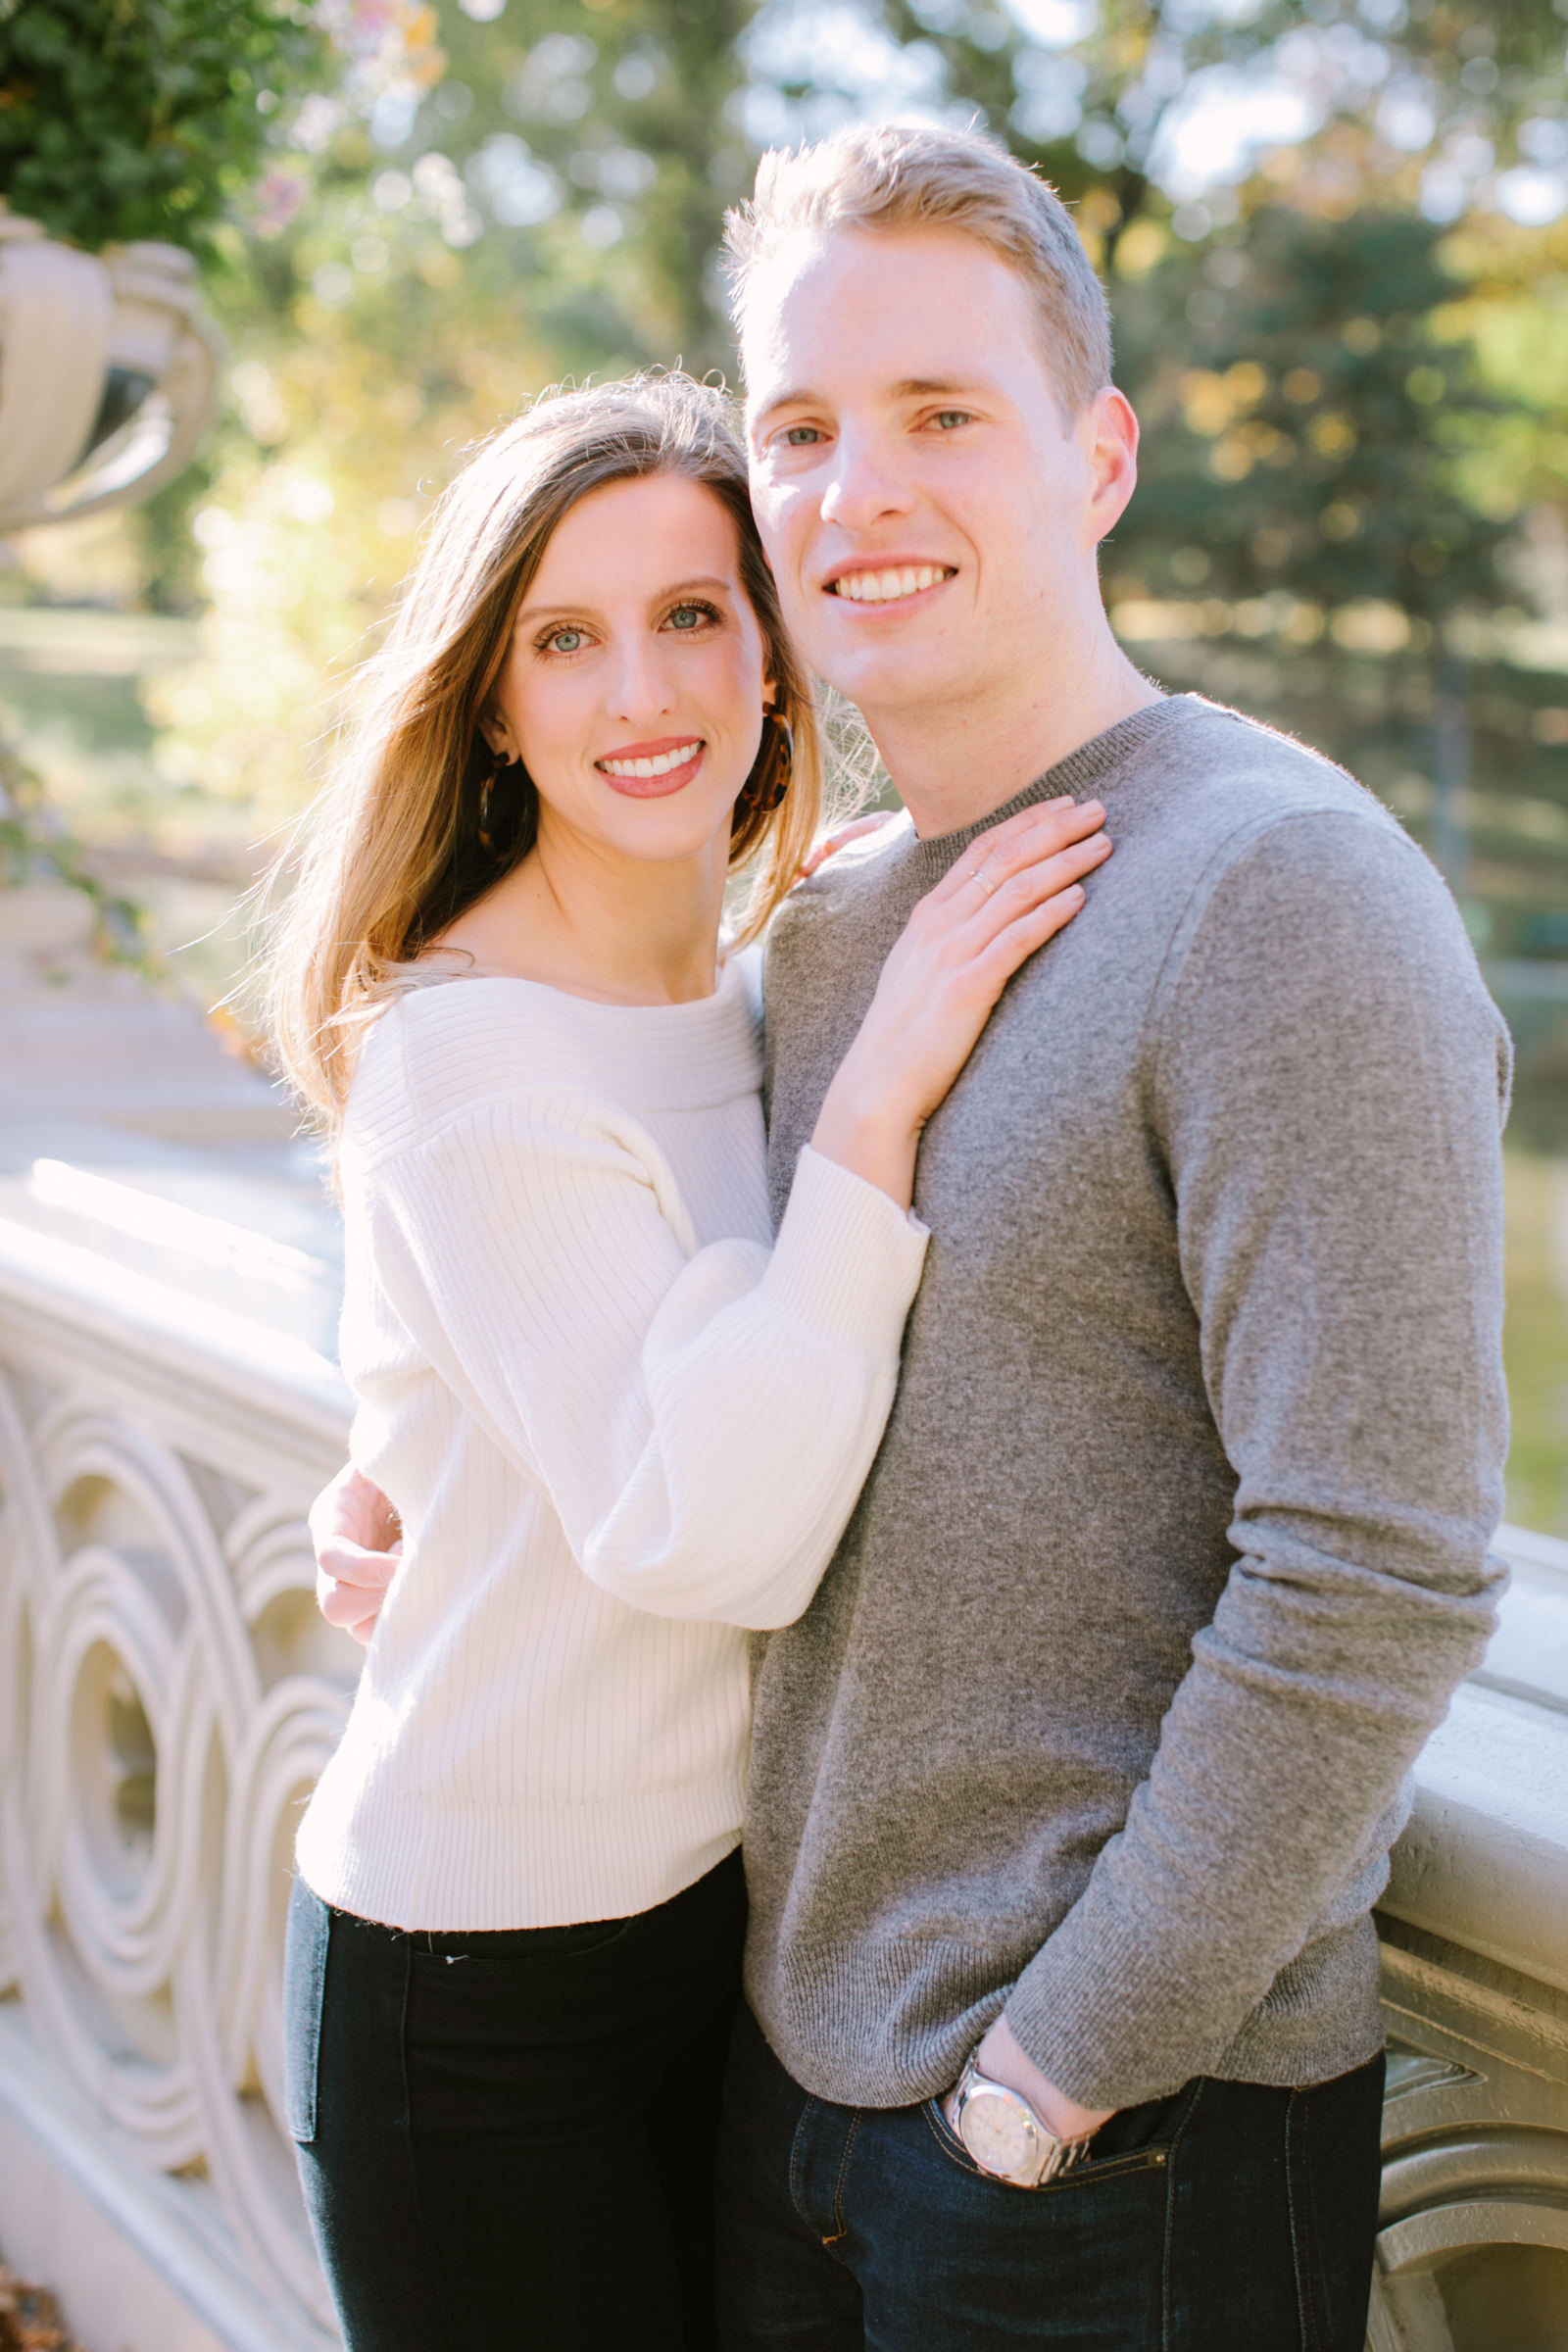 Central-park-fall-engagement-session-by Tanya Isaeva-60.jpg